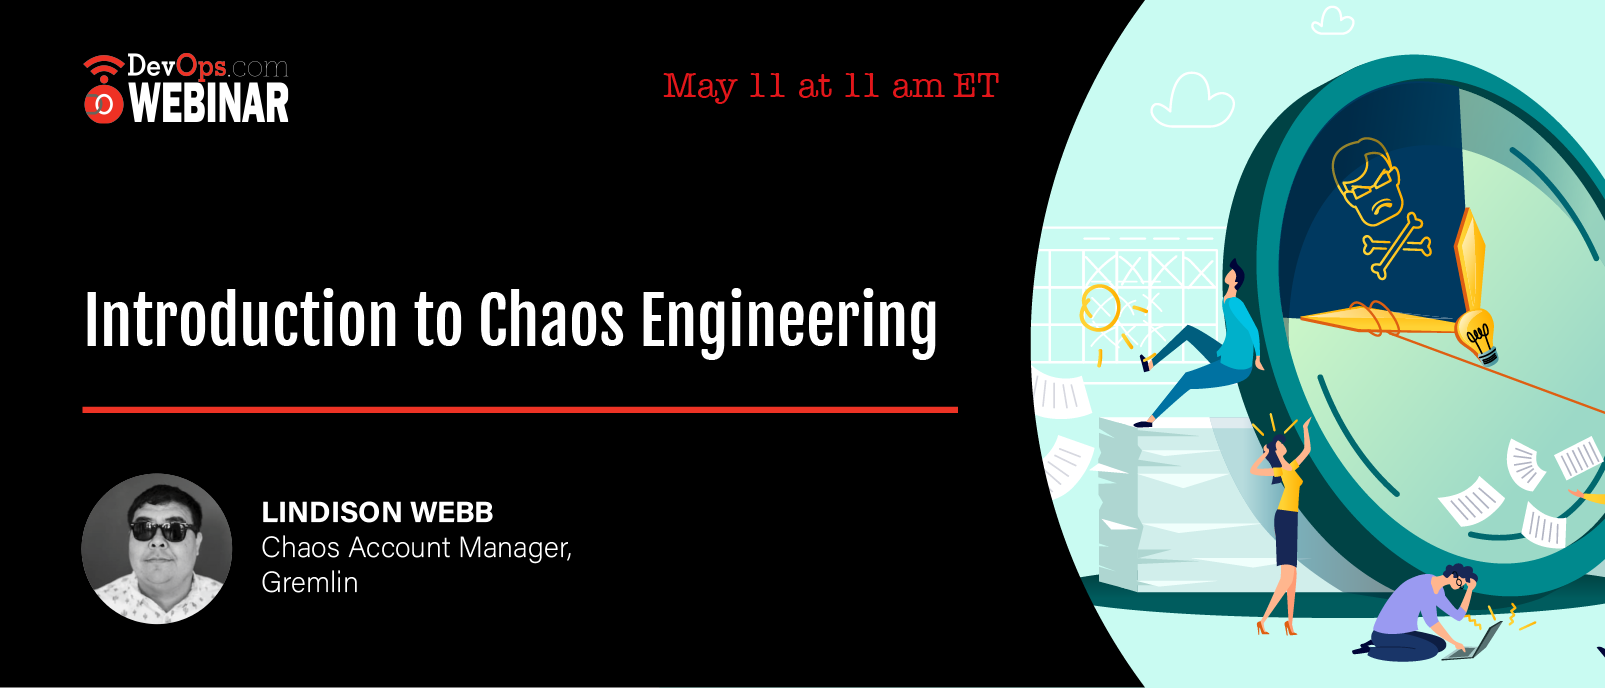 Introduction to Chaos Engineering